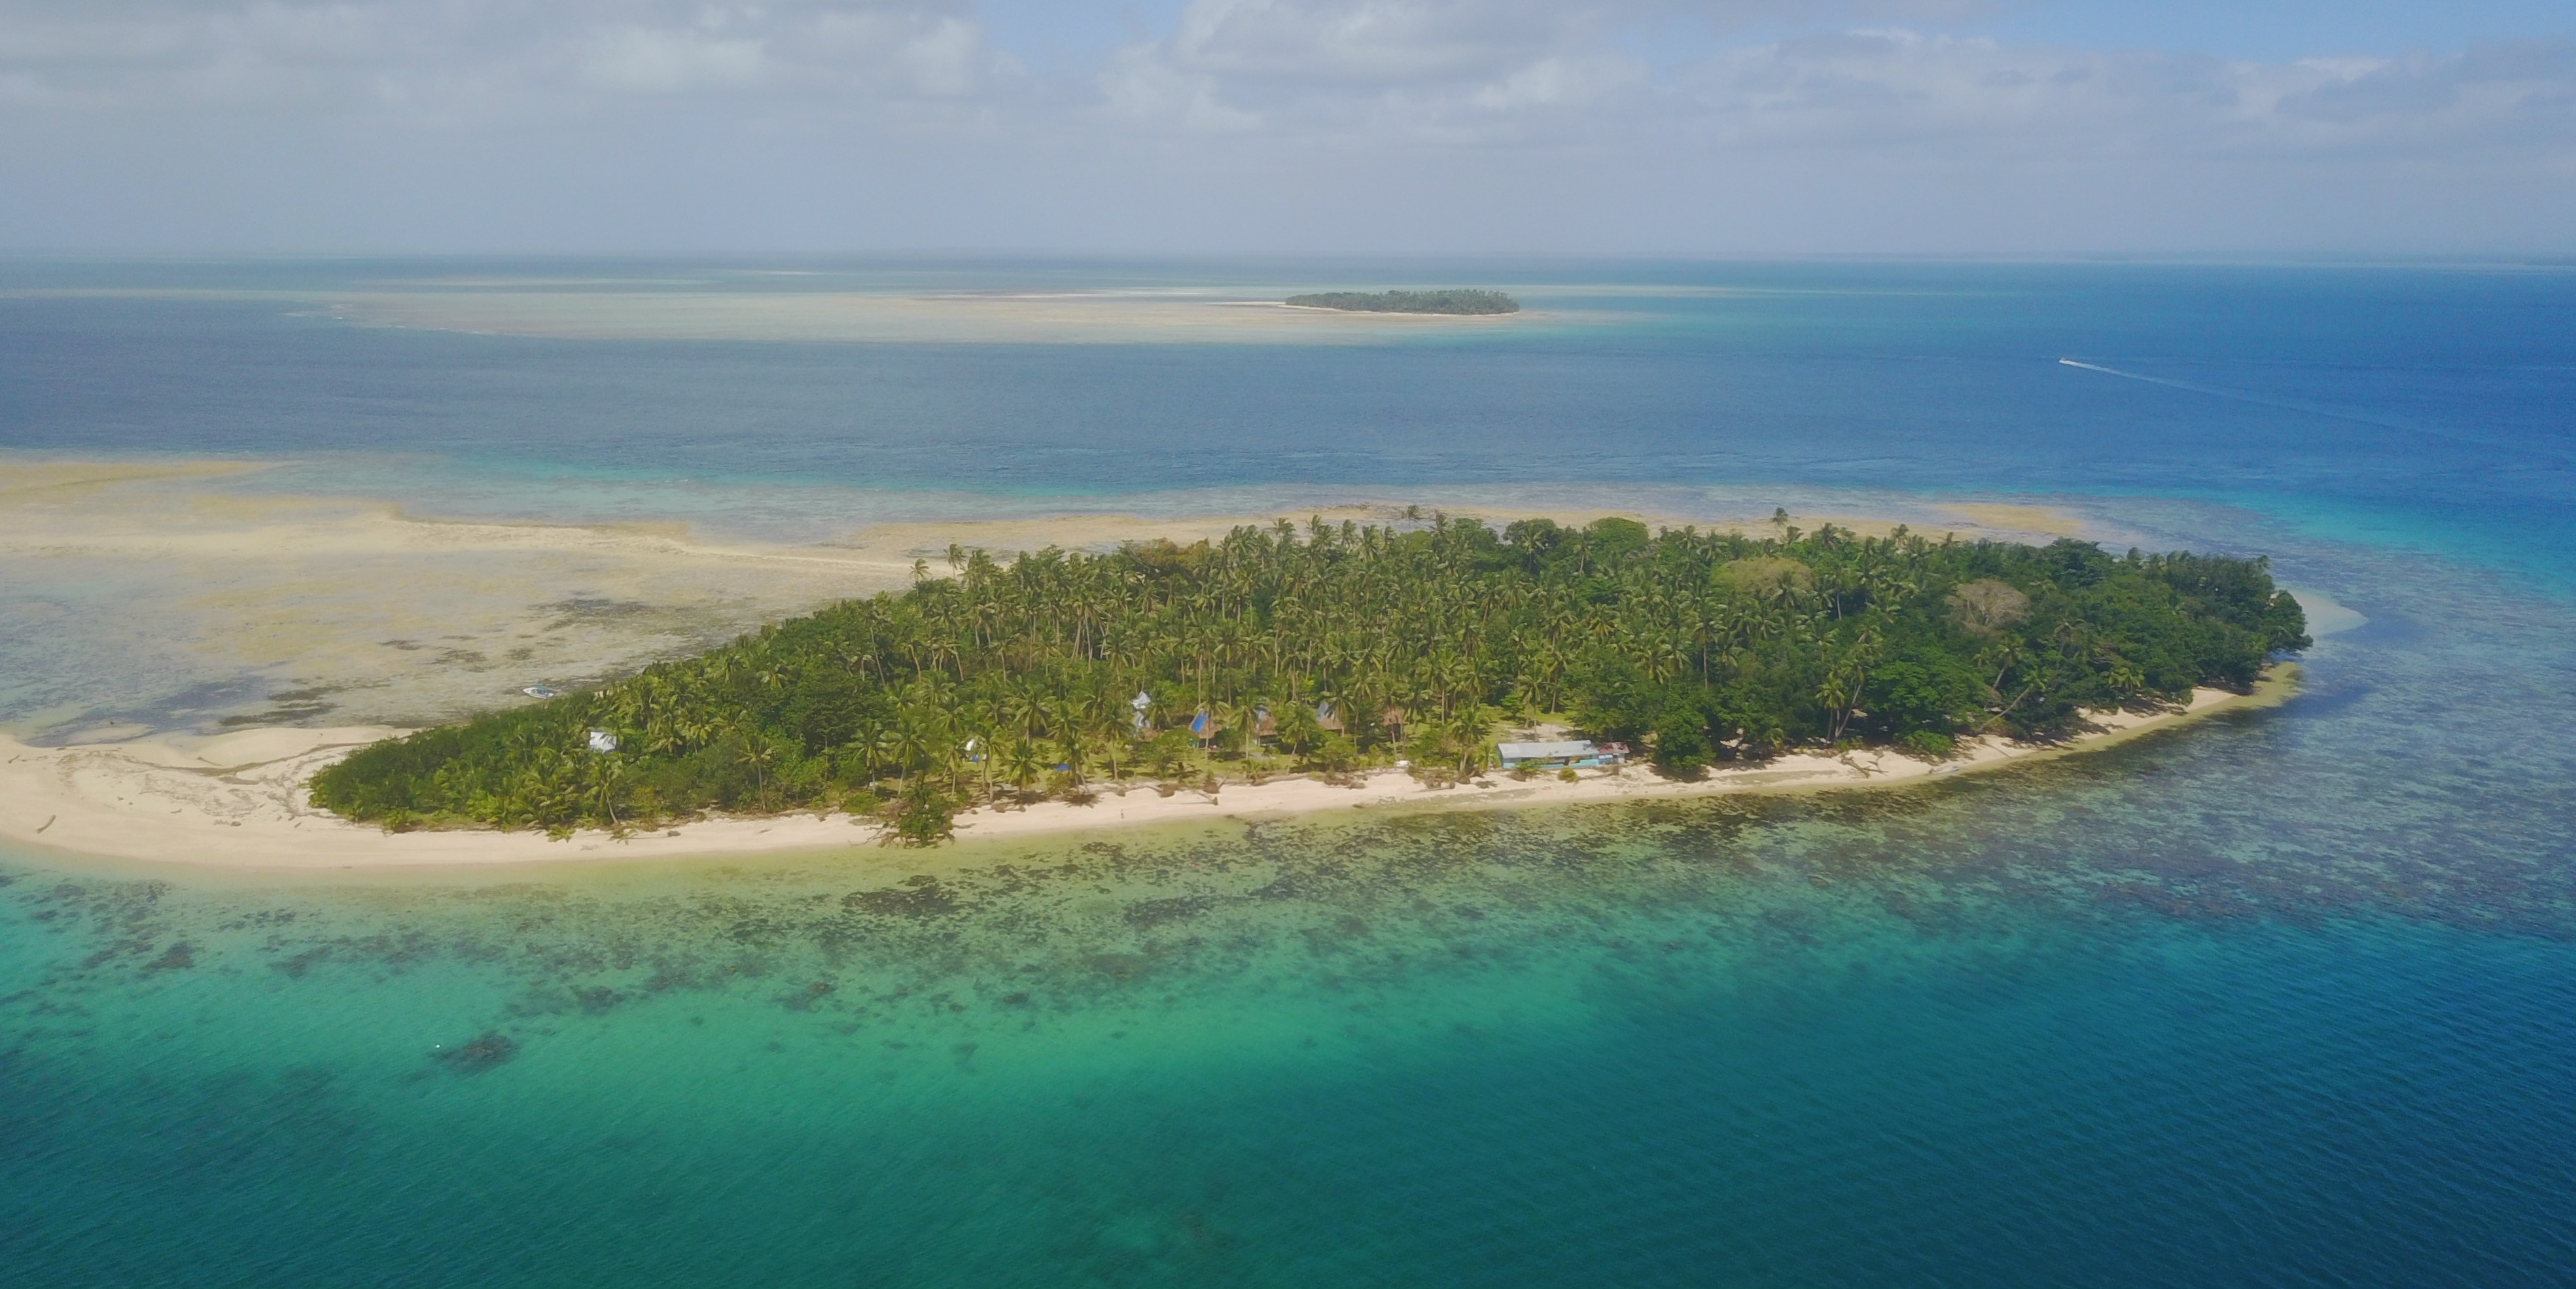 A diving career could take you to many idyllic locations, such as the island of Caqalai in Fiji.